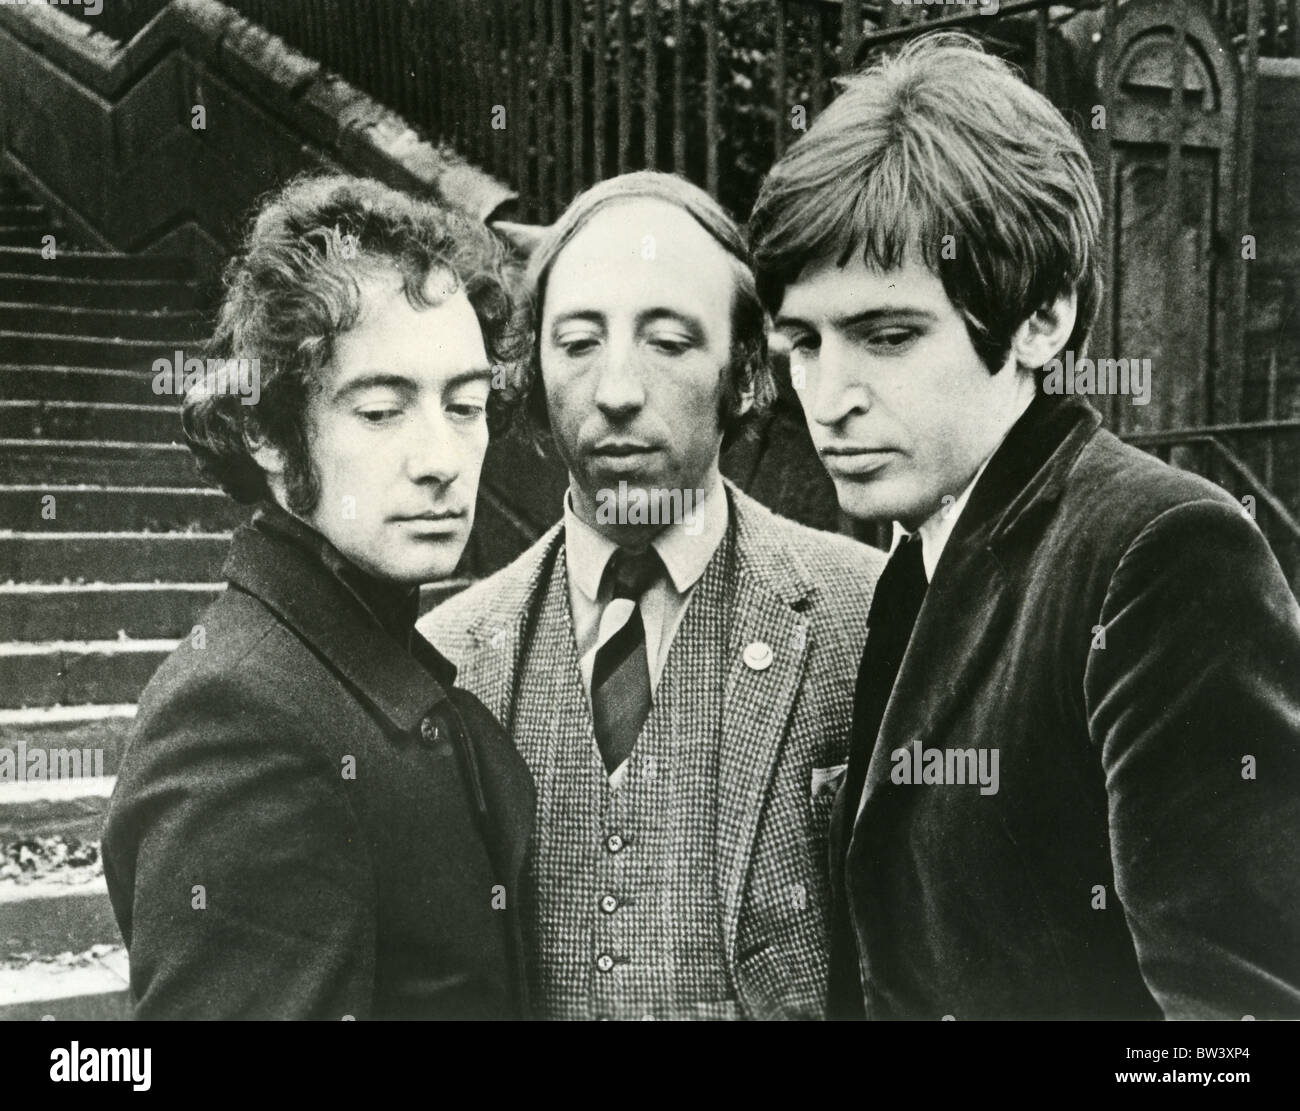 THE SCAFFOLD  Promotional photo of UK pop group in  1968 from l: Roger McGough, John Gorman and Mike McGear - Stock Image